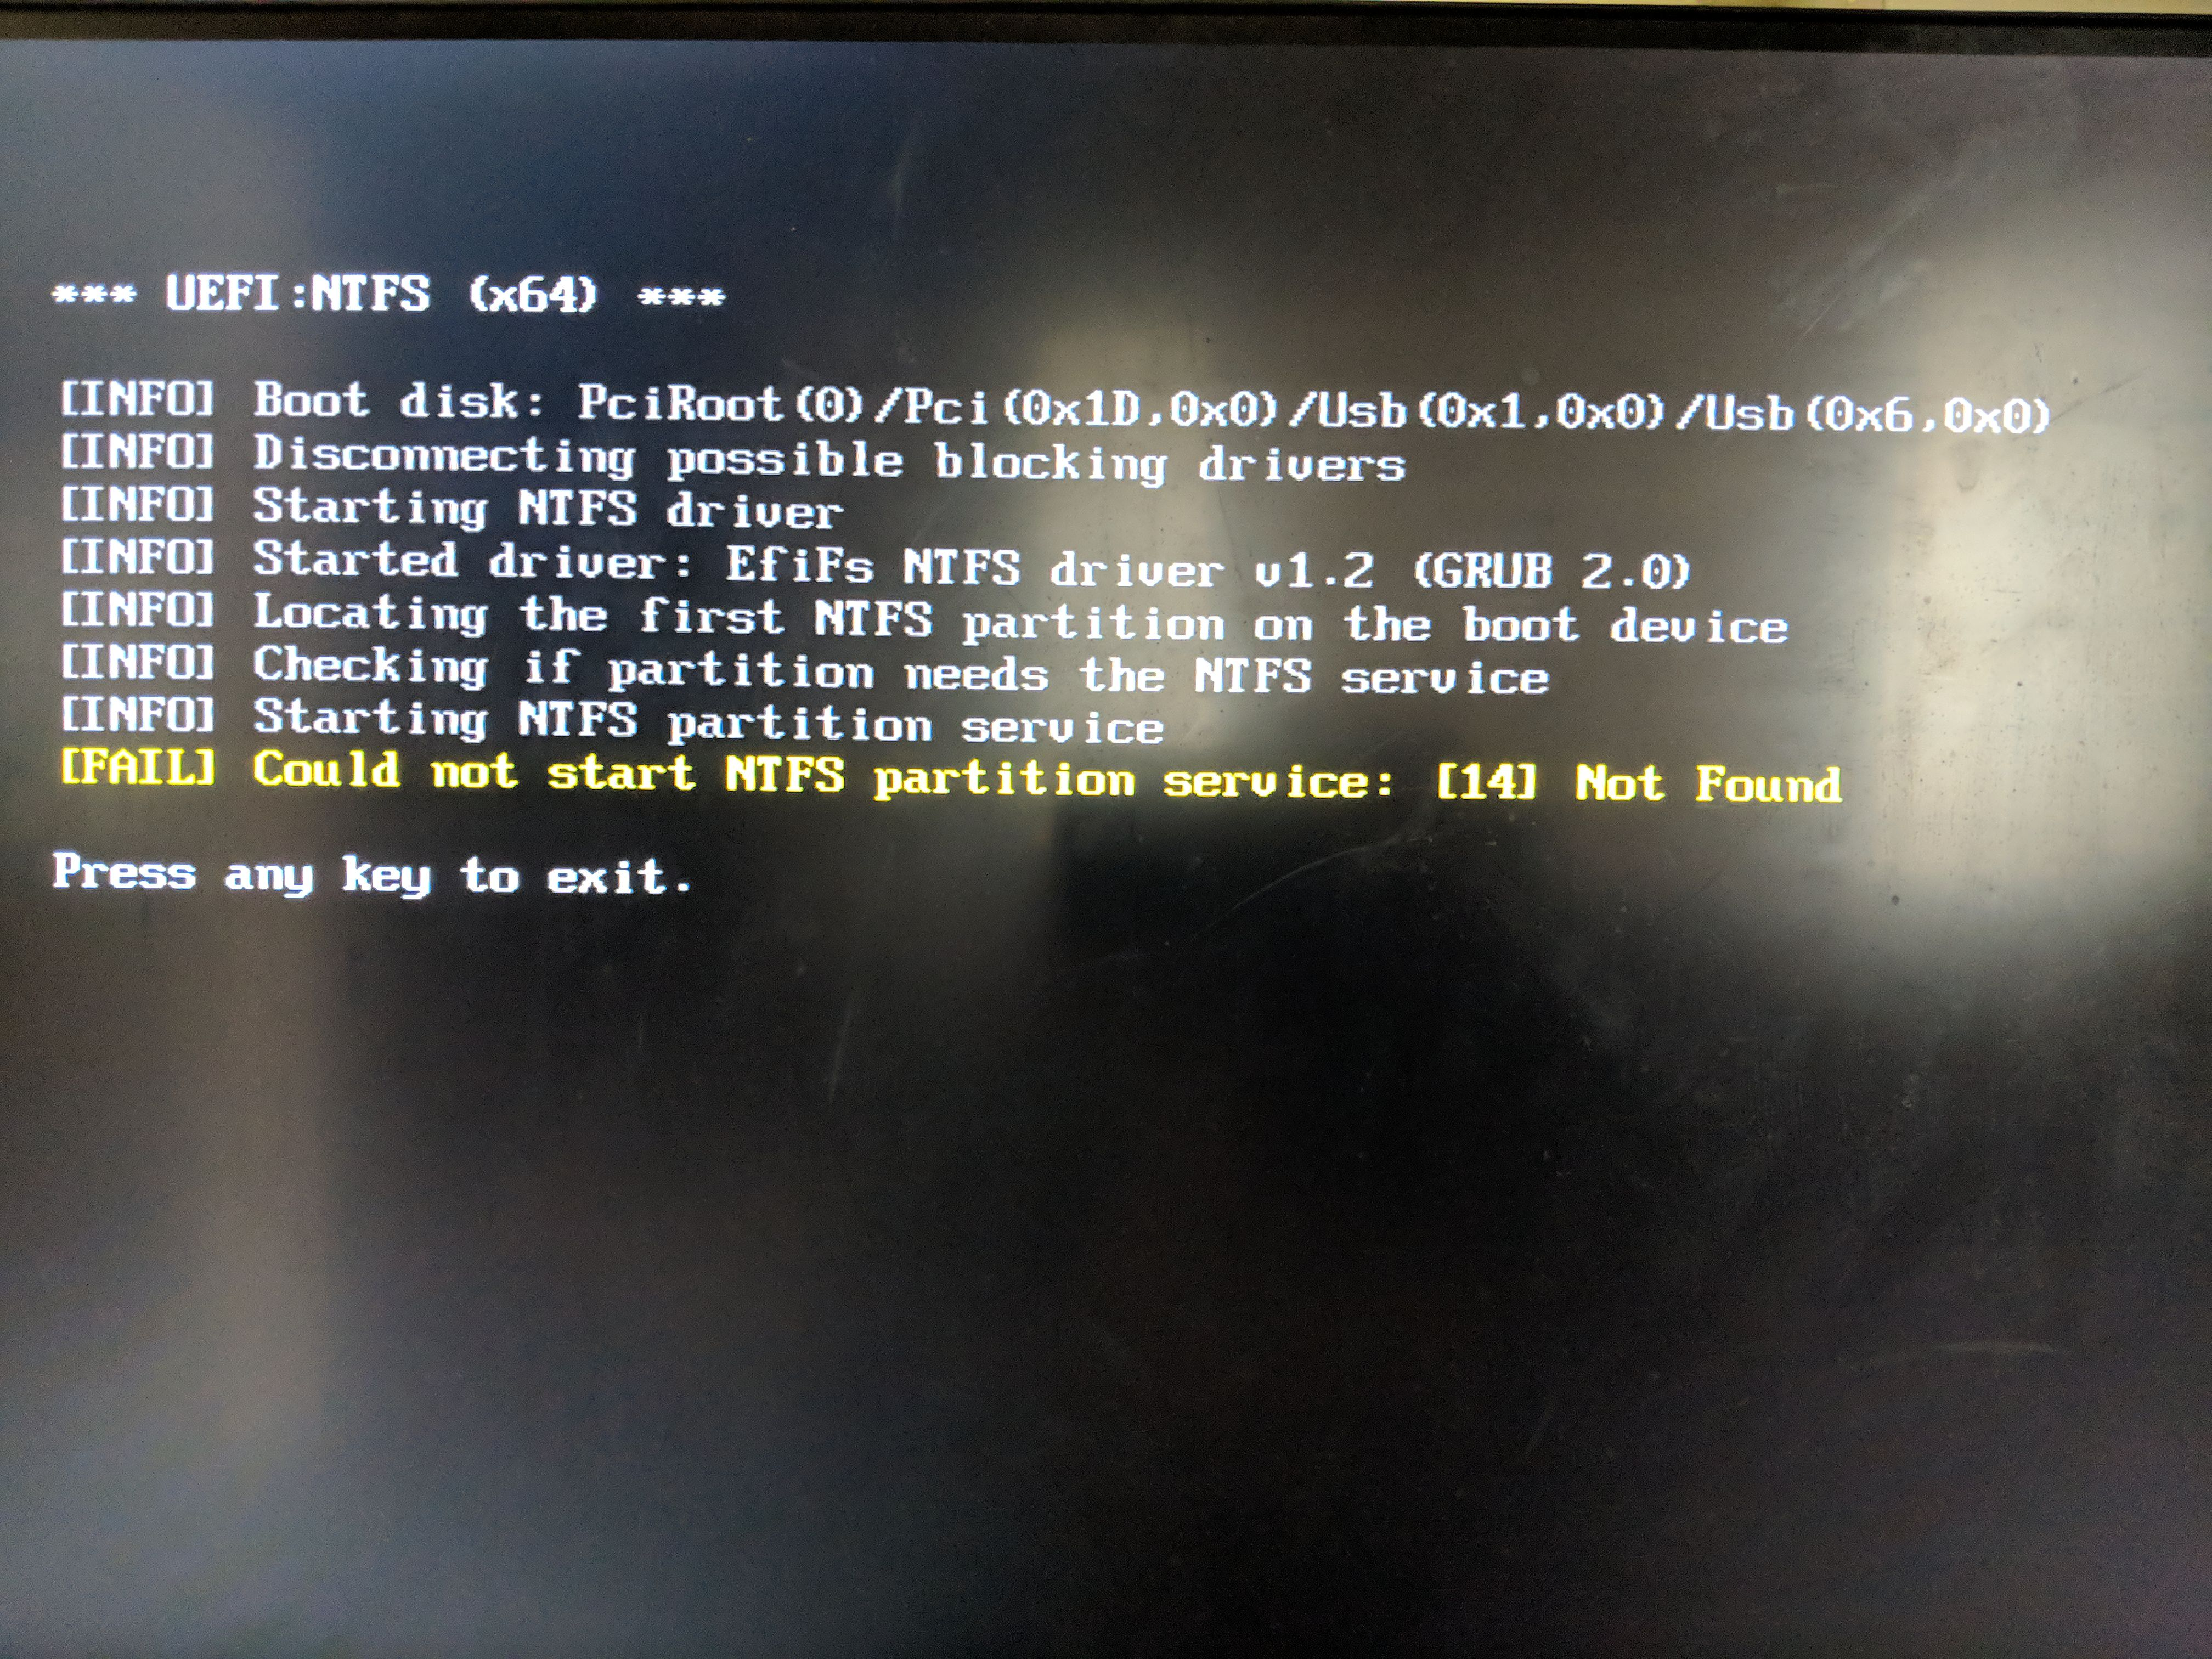 """Uefi:ntfs """"could not locate '\efi\boot\bootx64. Efi': [14] not."""